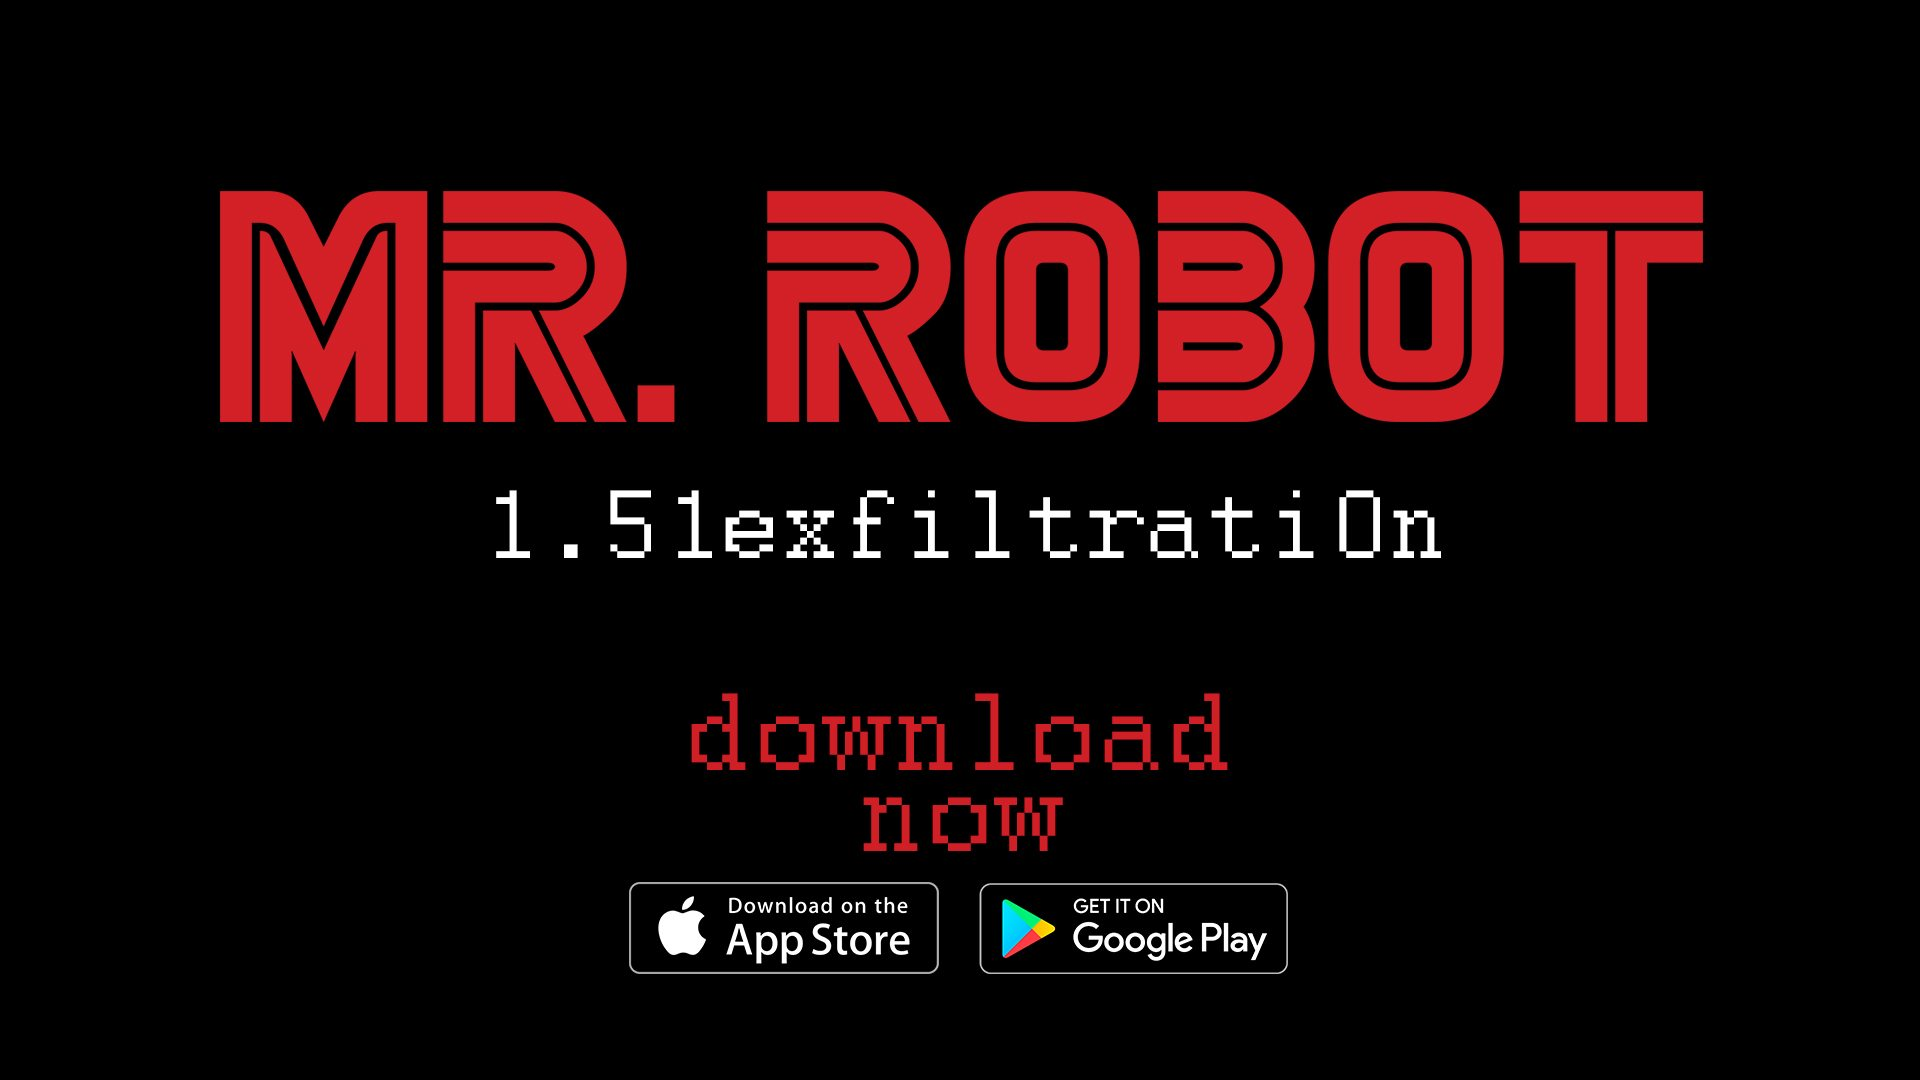 Telltale Games & Night School Studios Release Mr. Robot:1.51exfiltratiOn for Mobile Devices